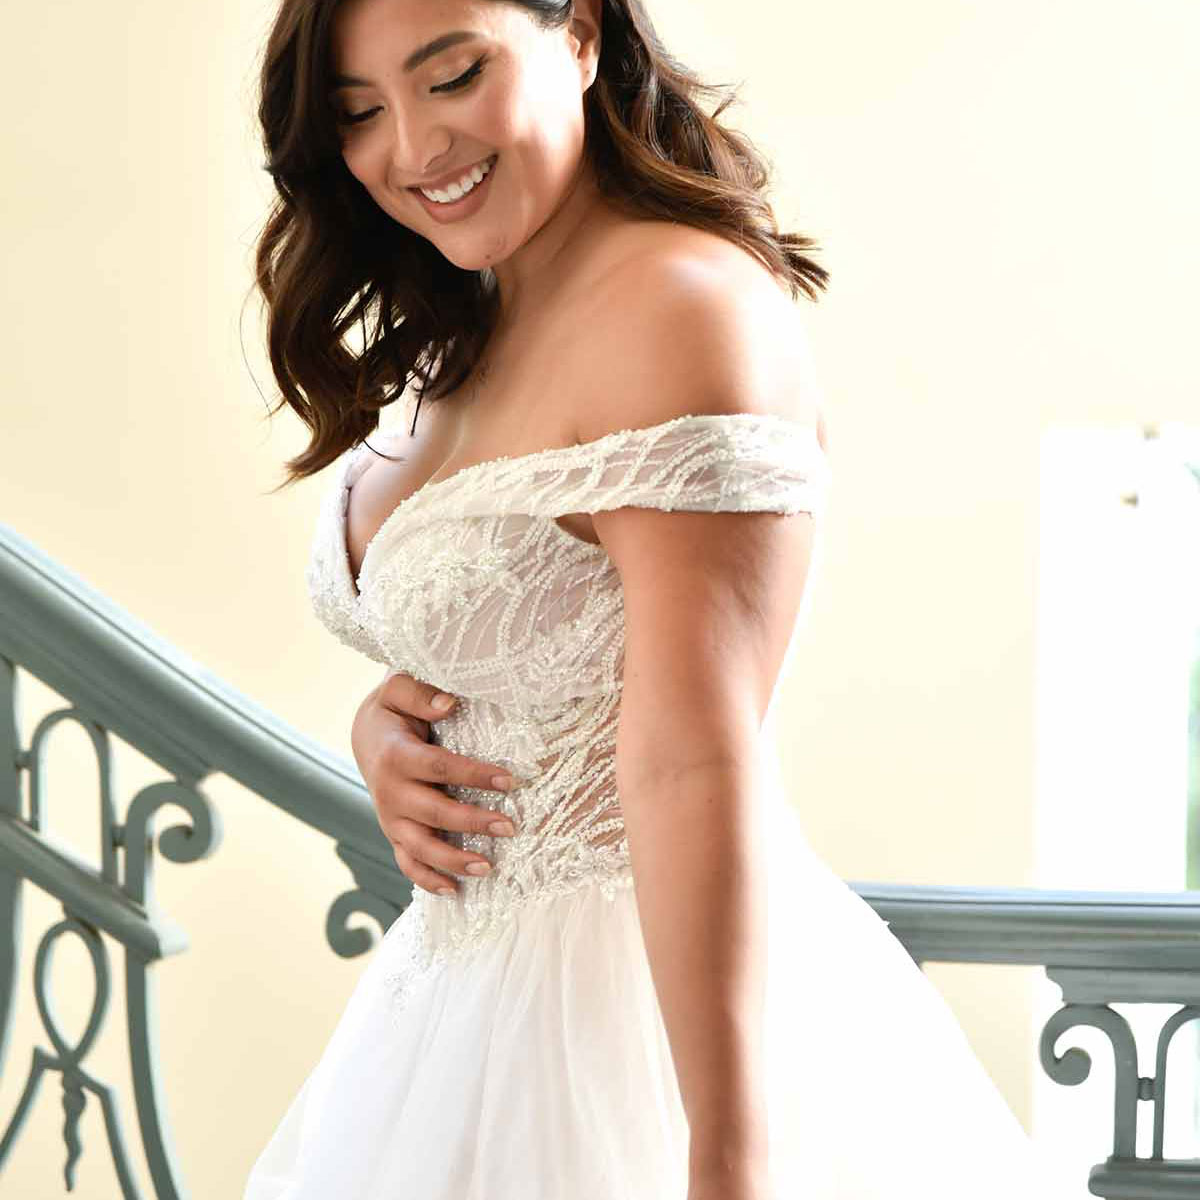 Off-the-shoulder cap sleeves on this ballgown wedding dress